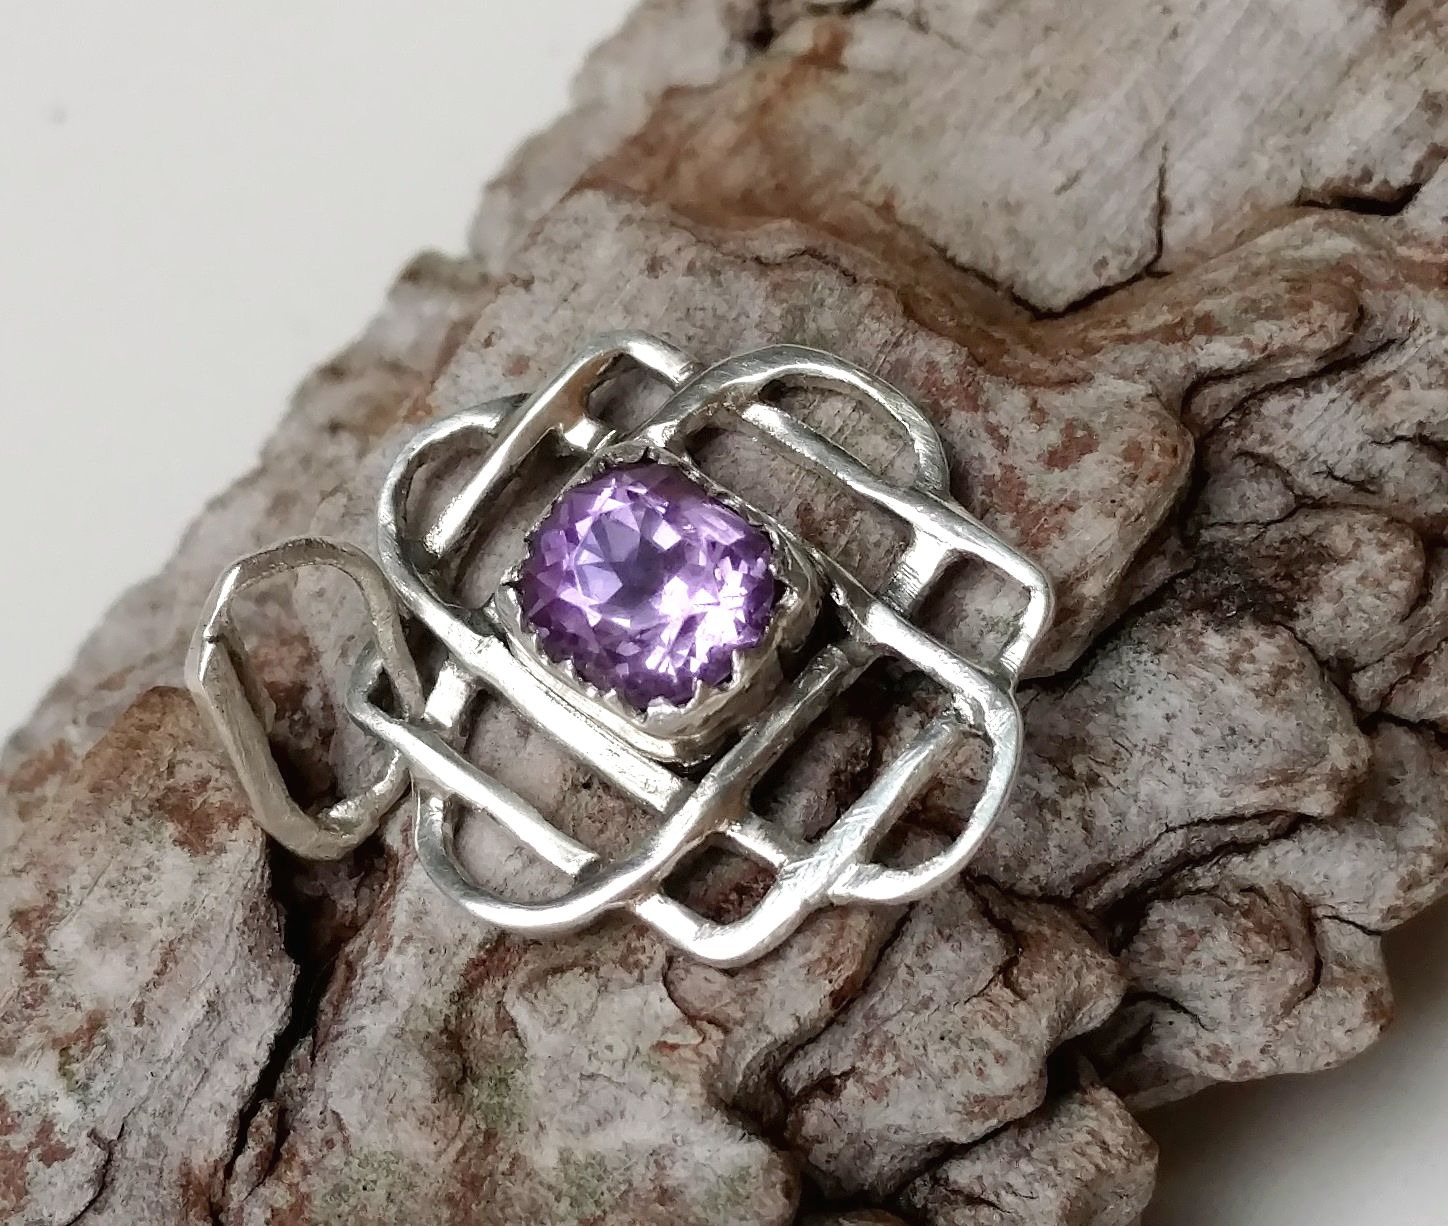 Celtic knot aka Star of Svarog charm with amethyst